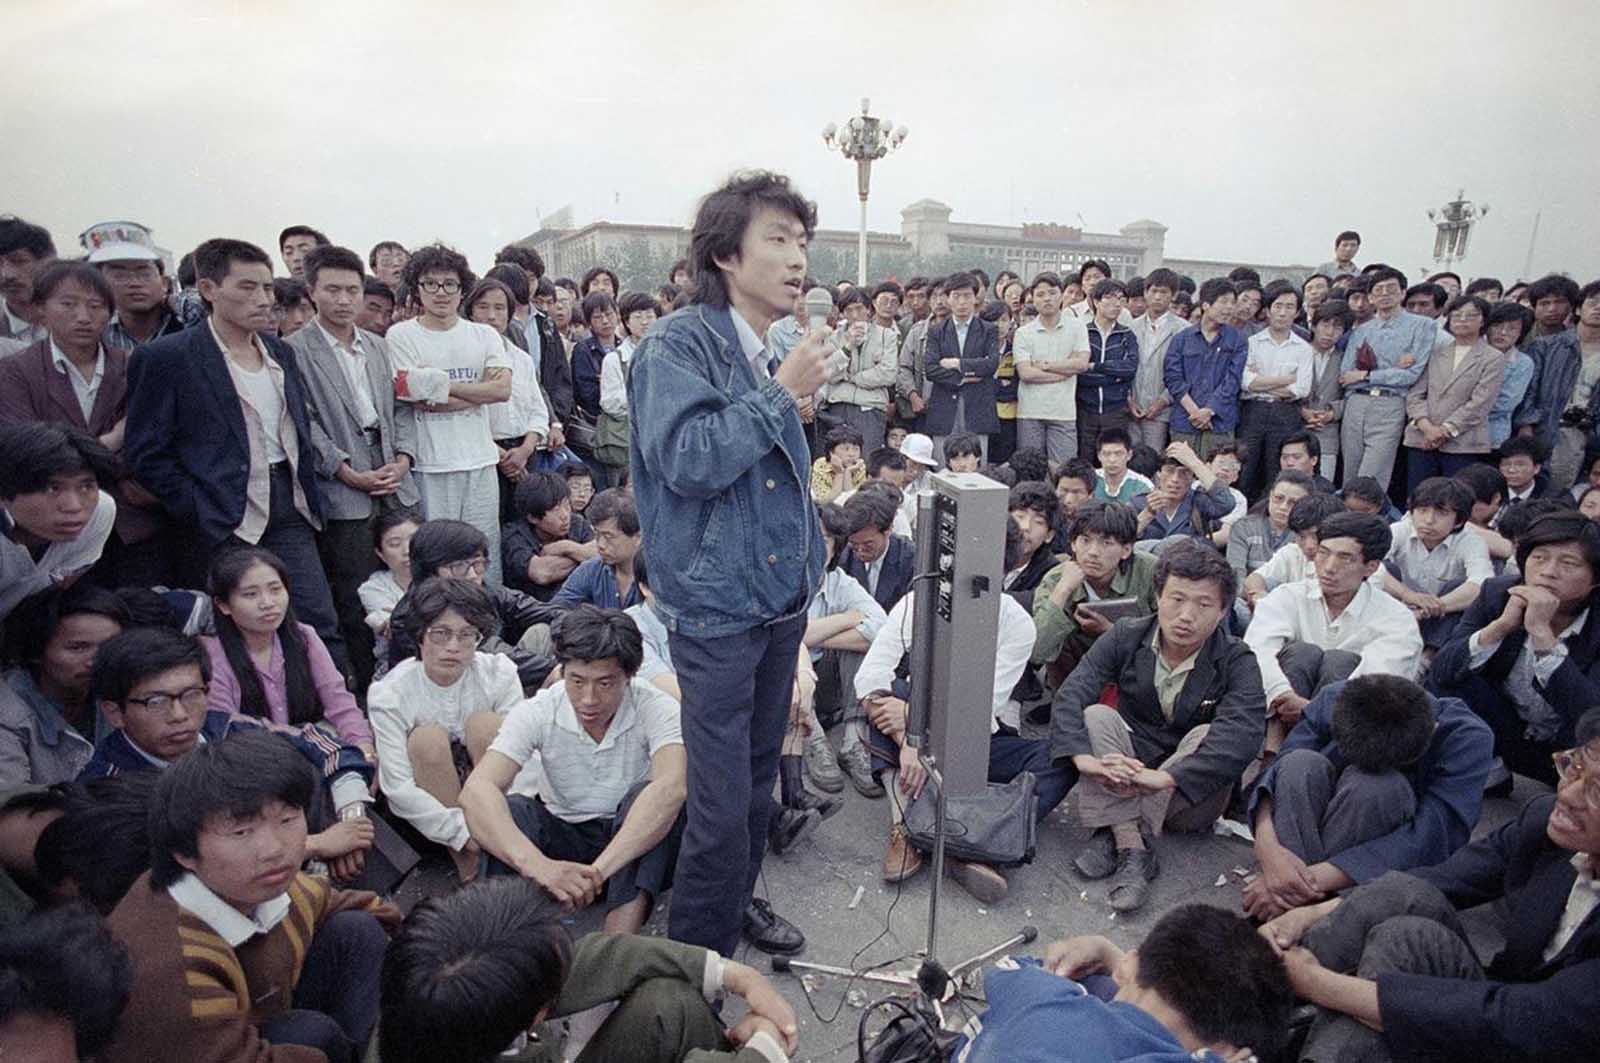 Beijing University students listen as a strike spokesman details plans for a rally in Tiananmen Square, which they have occupied for the last two weeks, on May 28, 1989.